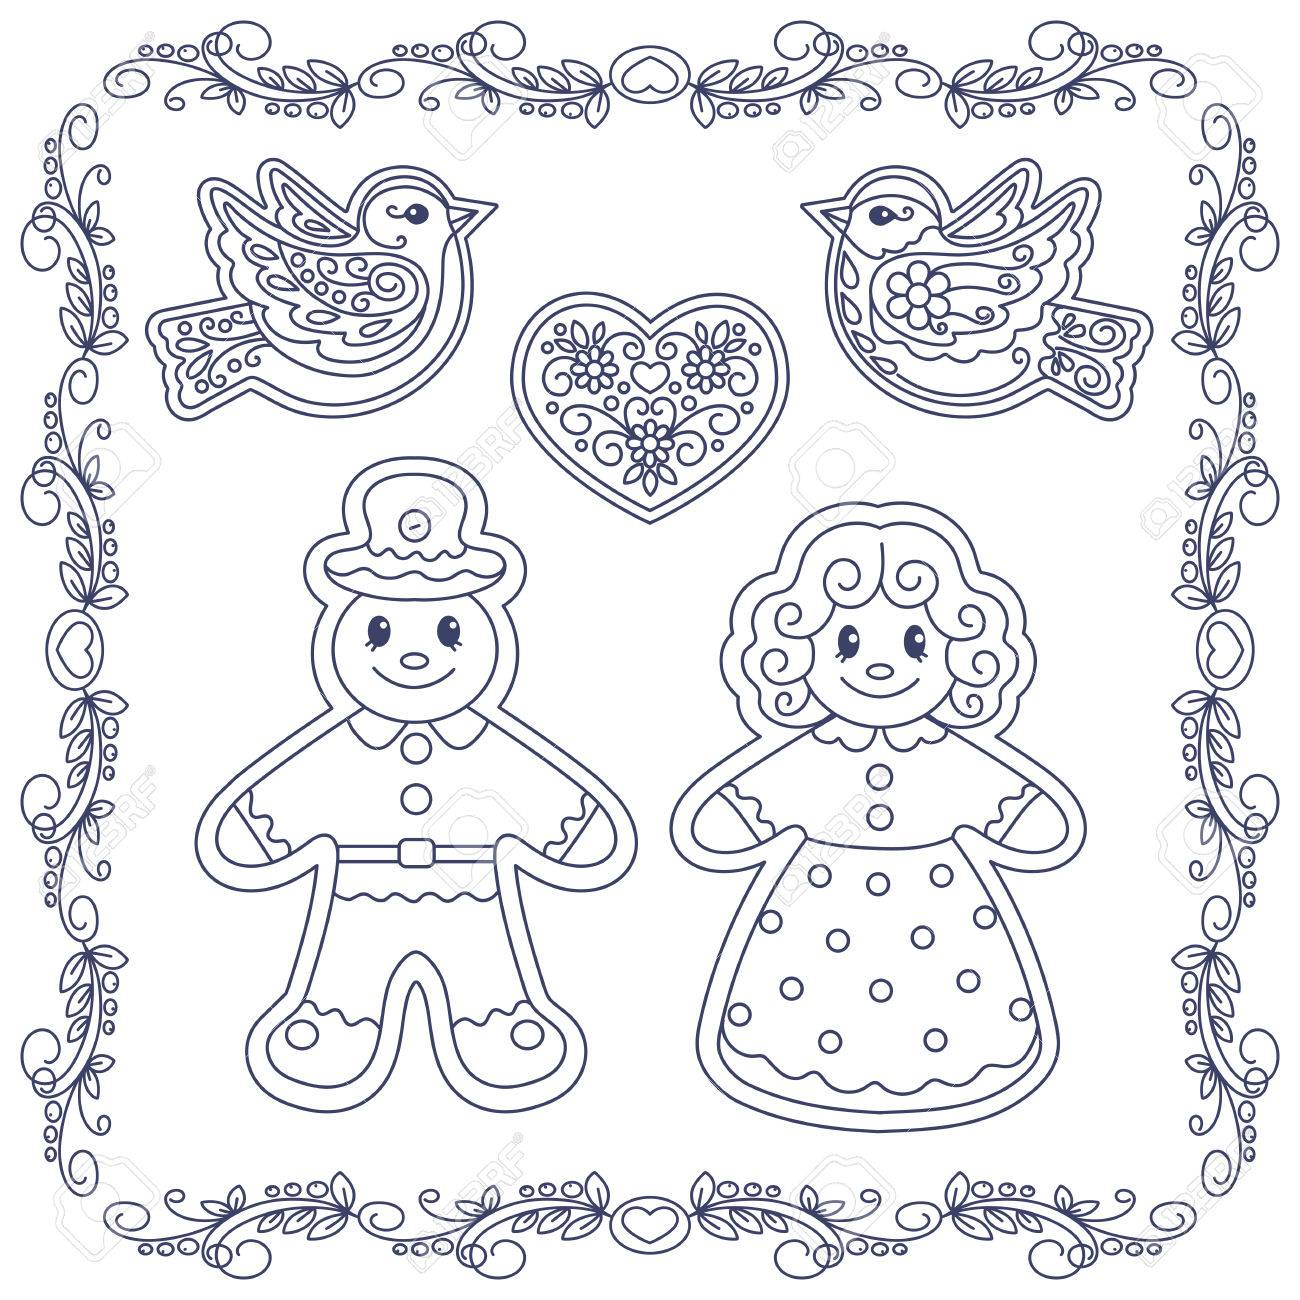 It's just a picture of Gingerbread Man Printable Book regarding loose